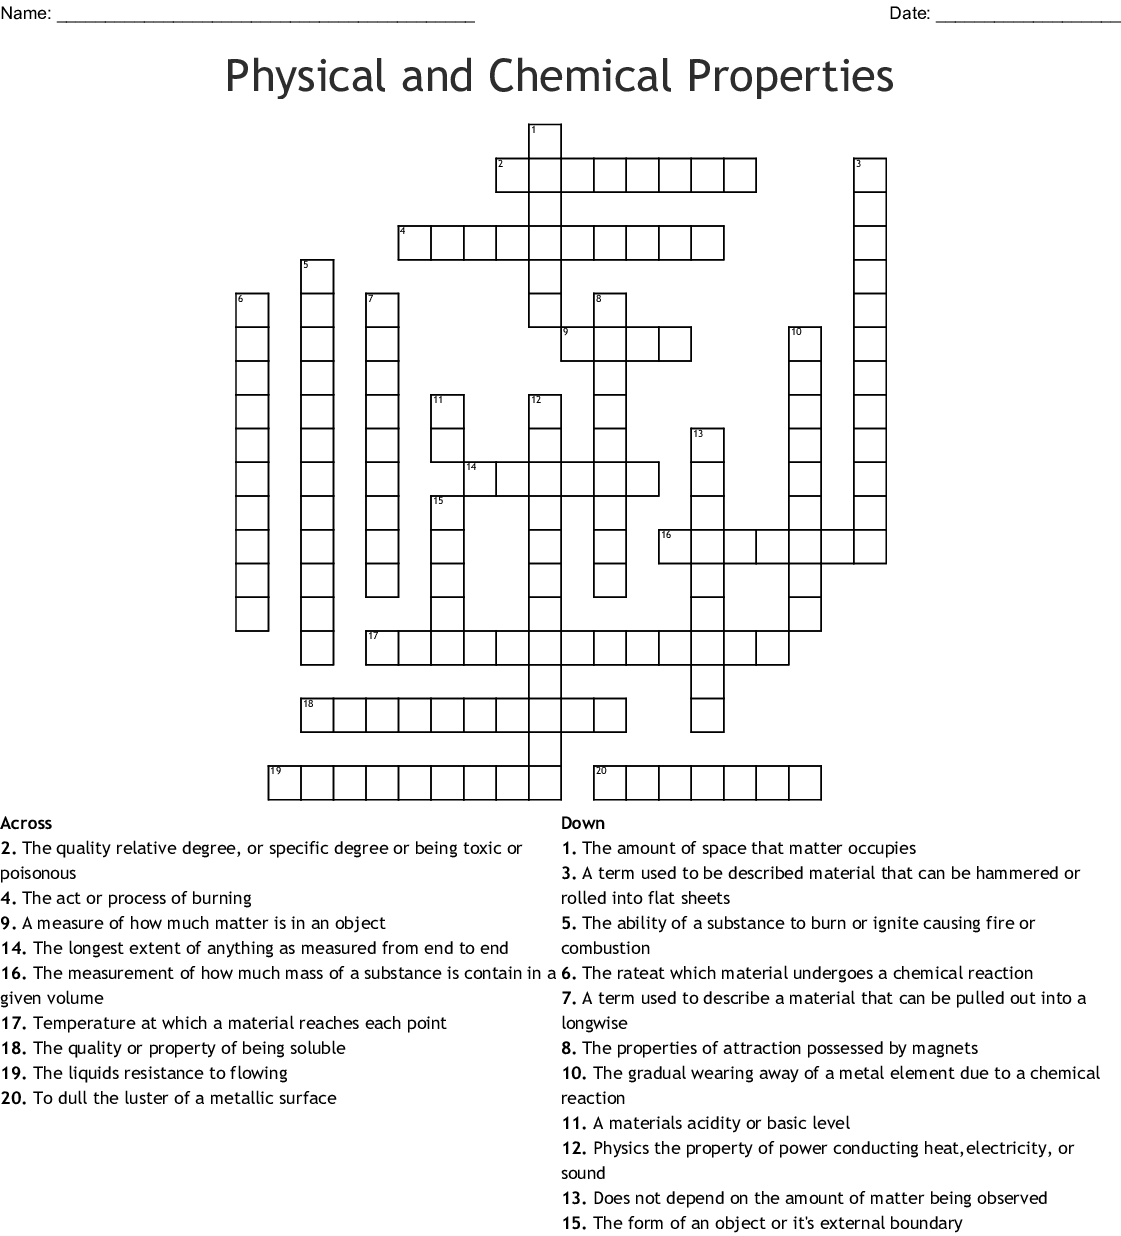 Physical and Chemical Properties Crossword - WordMint